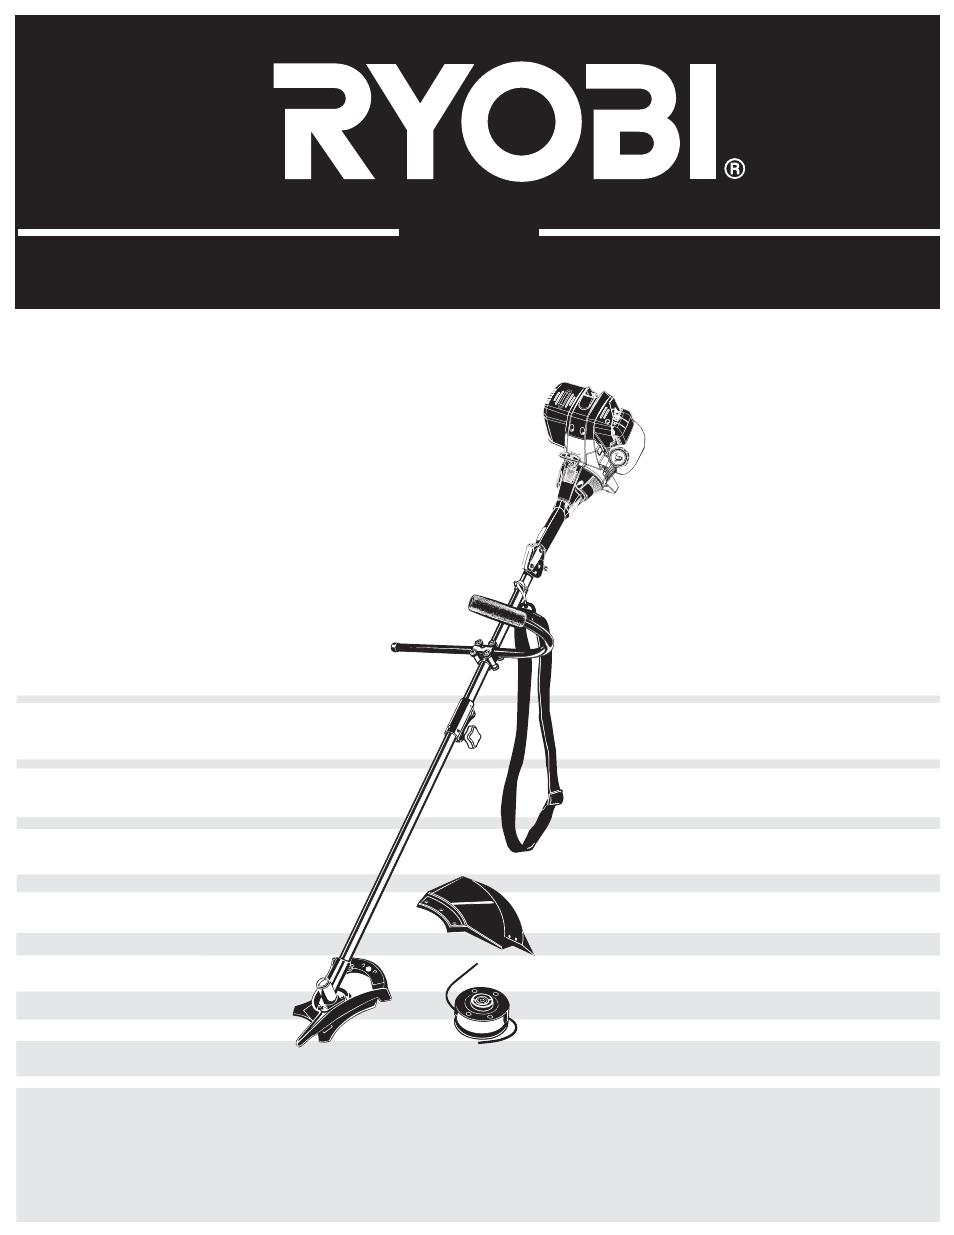 Ryobi 4 Cycle Trimmer Manual Great Ry30020b Parts List And Diagram Ereplacementpartscom With